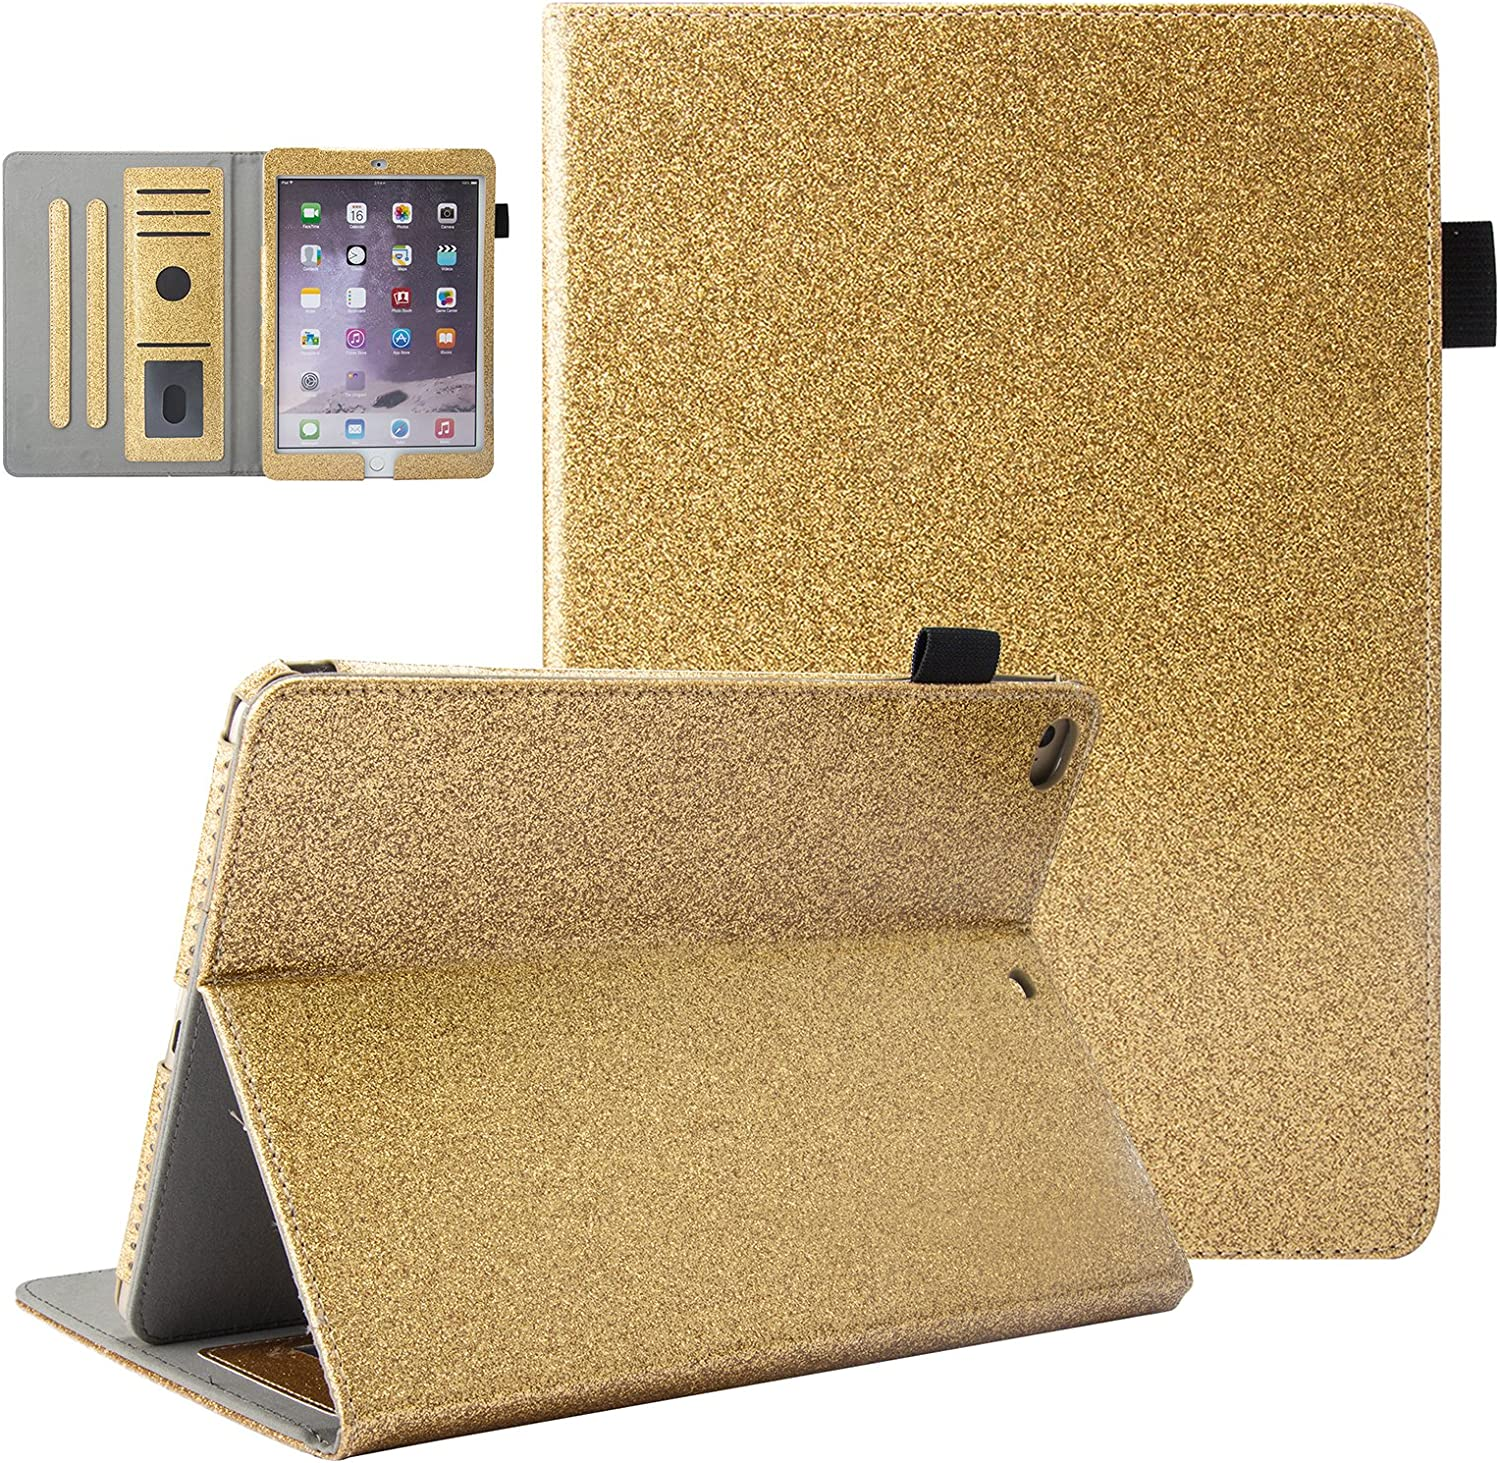 UUCOVERS iPad 9.7 2018 2017 Case iPad 6th/5th Gen, iPad Air 1/Air 2 Cover, Bling Glitter Stand Folio Wallet PU Leather Full Body Cover with Card Slots Stylus Pencil Holder [Auto Sleep/Wake], Gold